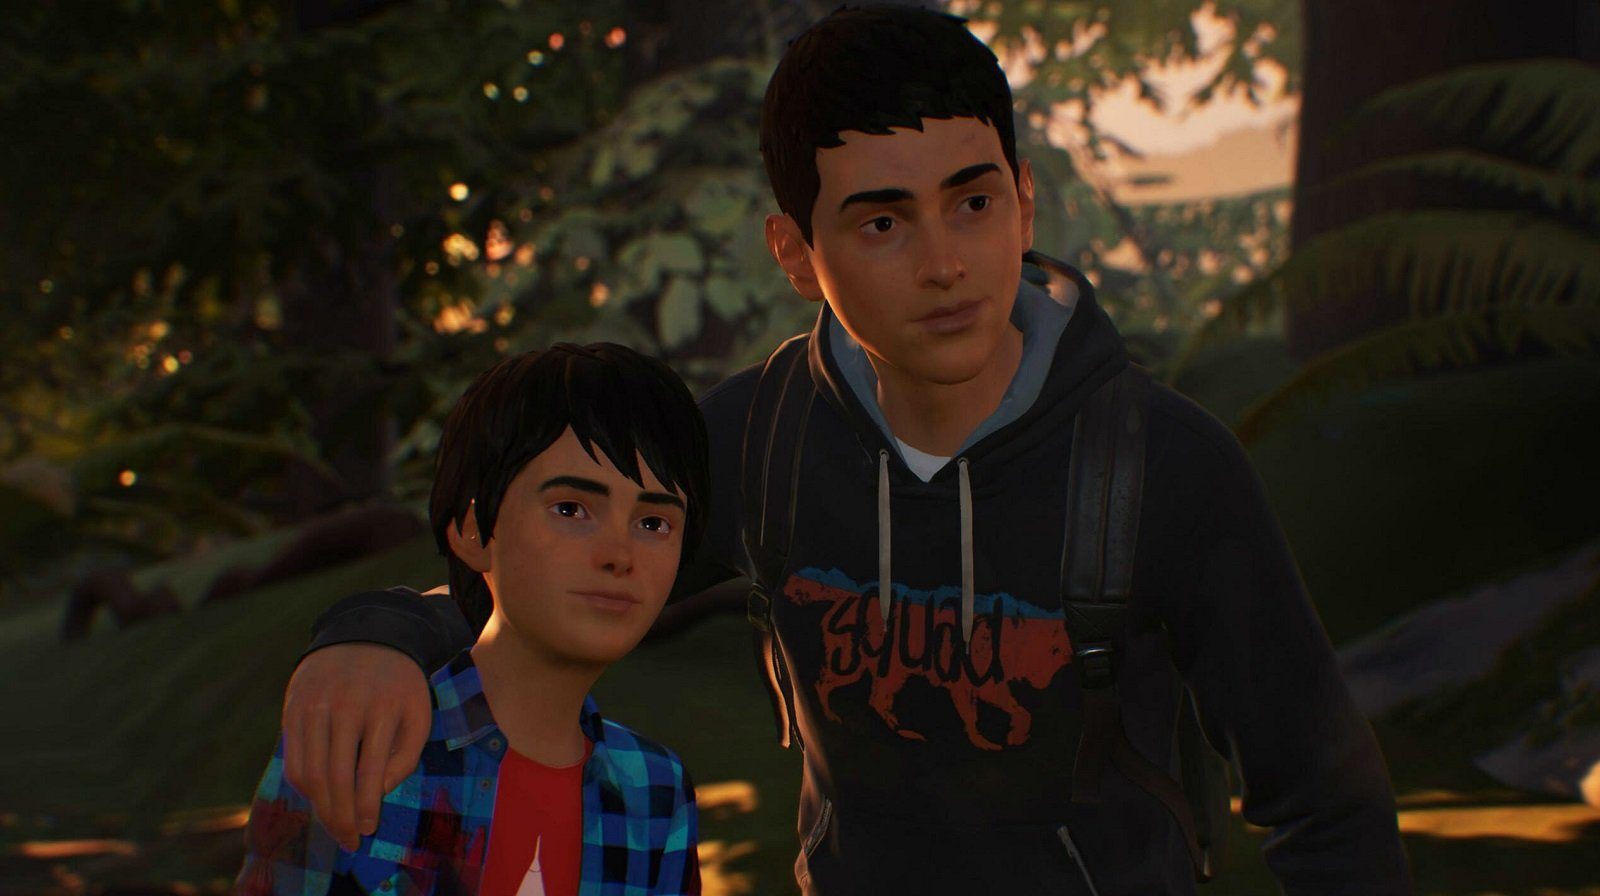 The first episode of Life is Strange 2 is being added to Xbox Game Pass in January